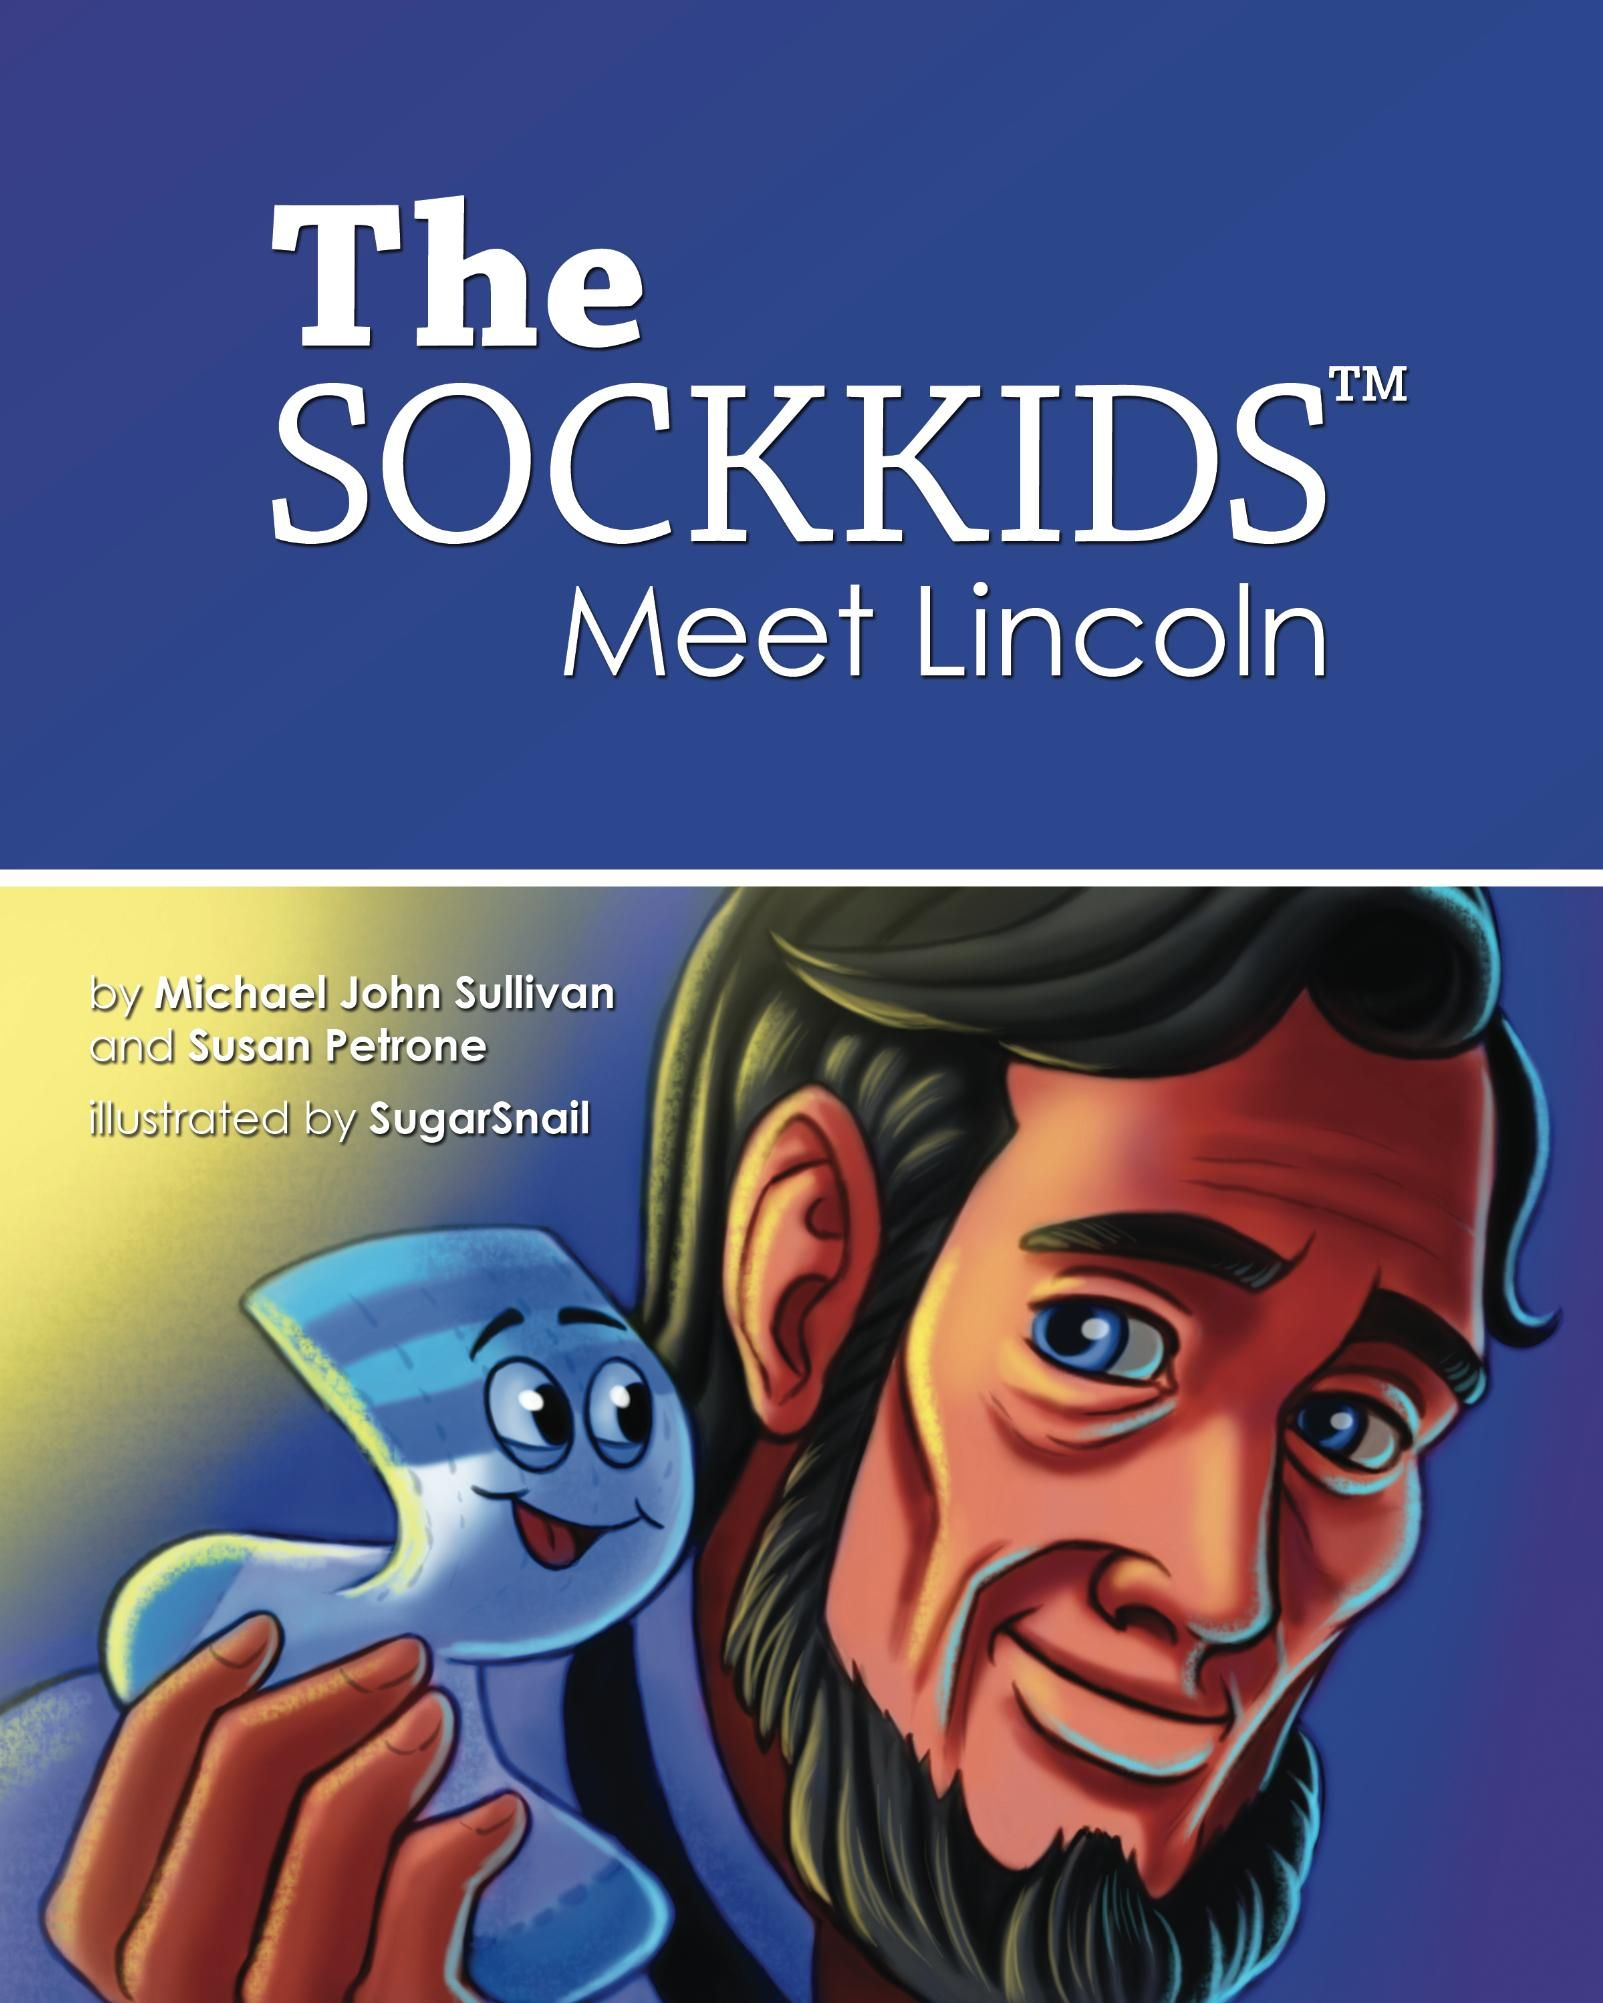 The Sock Kids Meet Lincoln By Michael John Sullivan And Susan Petrone